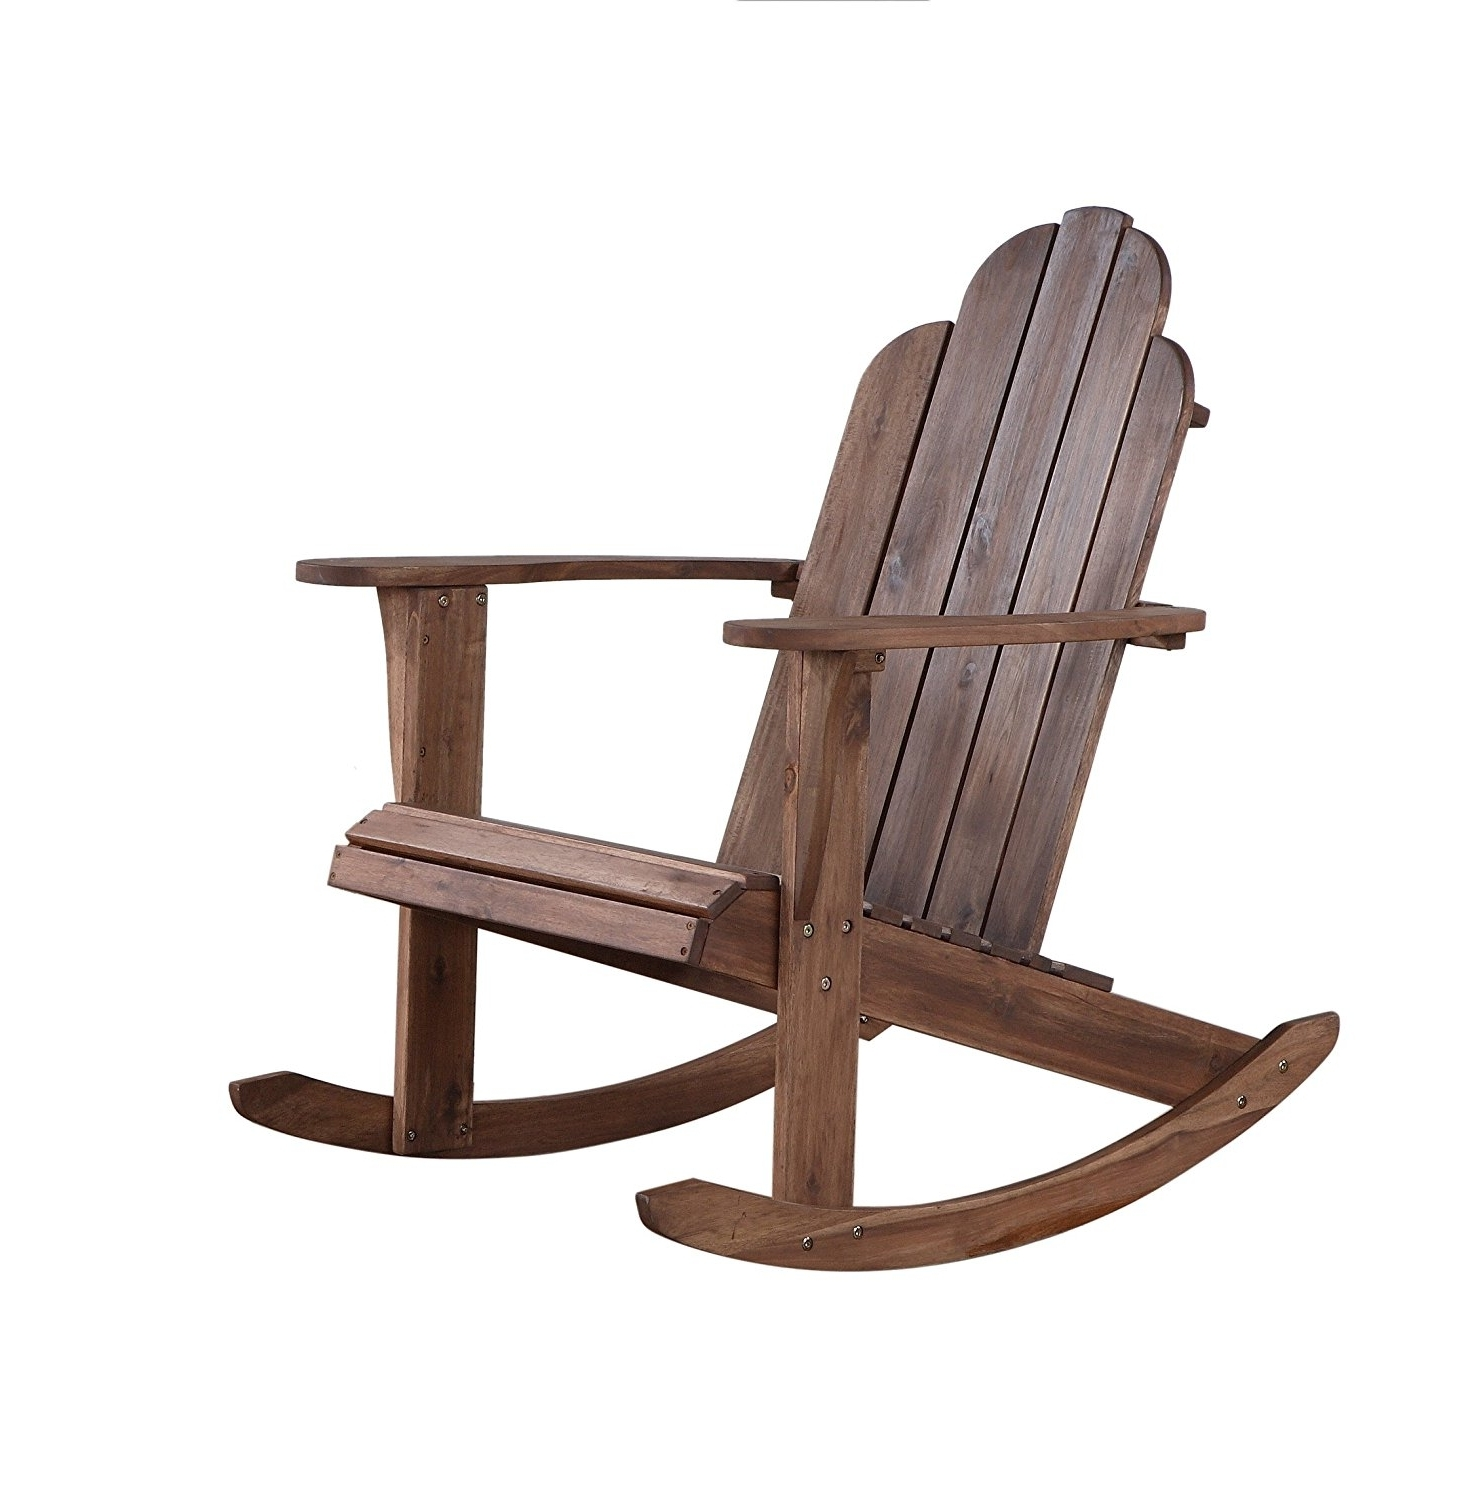 Best And Newest Amazon Com Linon Woodstock Rocking Chair Teak Kitchen Diningndack Inside Amazon Rocking Chairs (View 6 of 20)